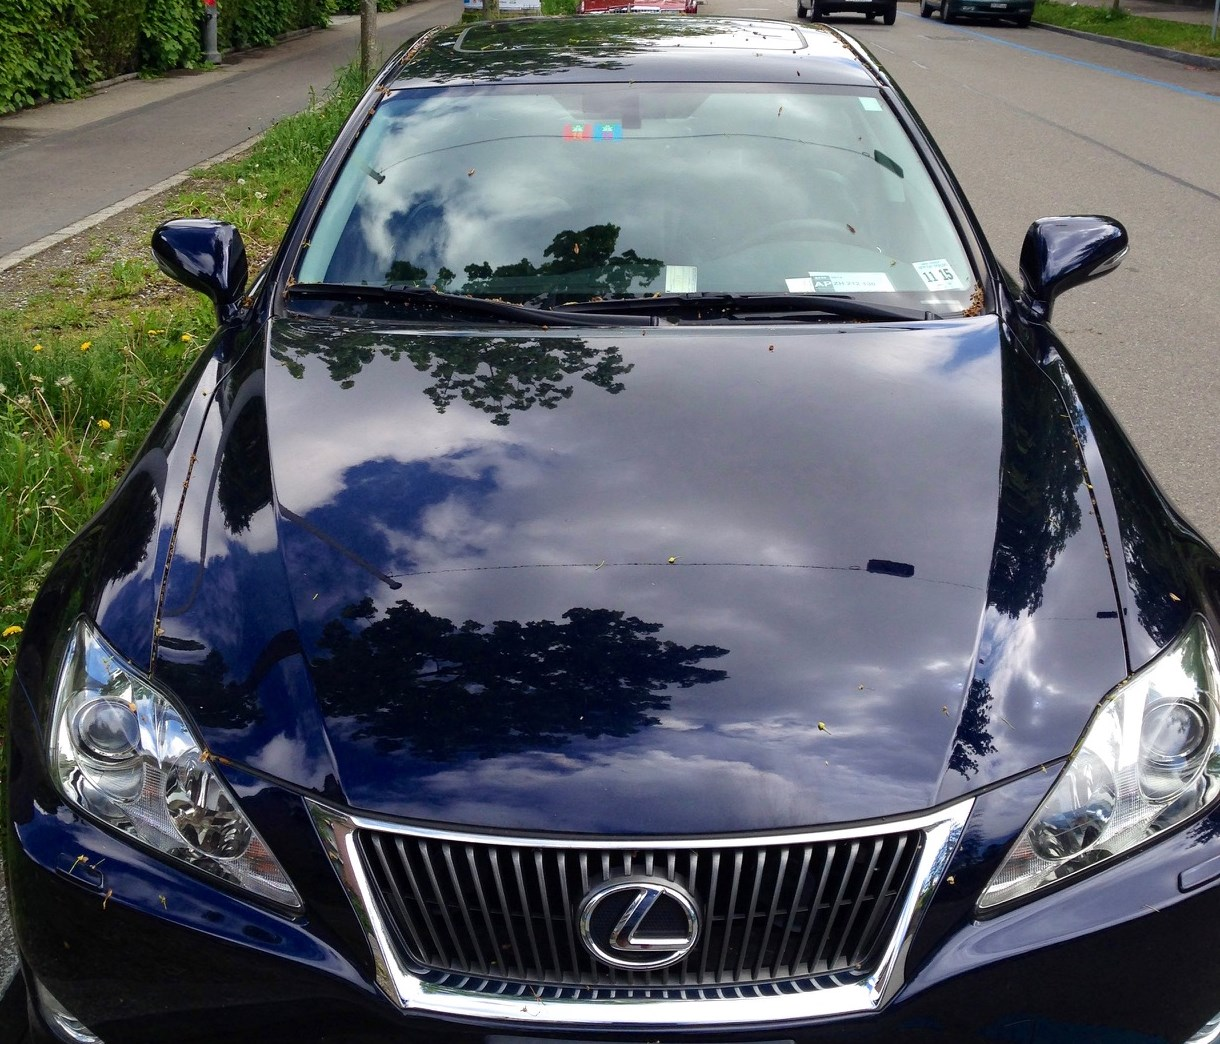 Used Lexus In Nj: For Sale: 2010 Lexus IS 250 AWD! Less Than 40K Miles